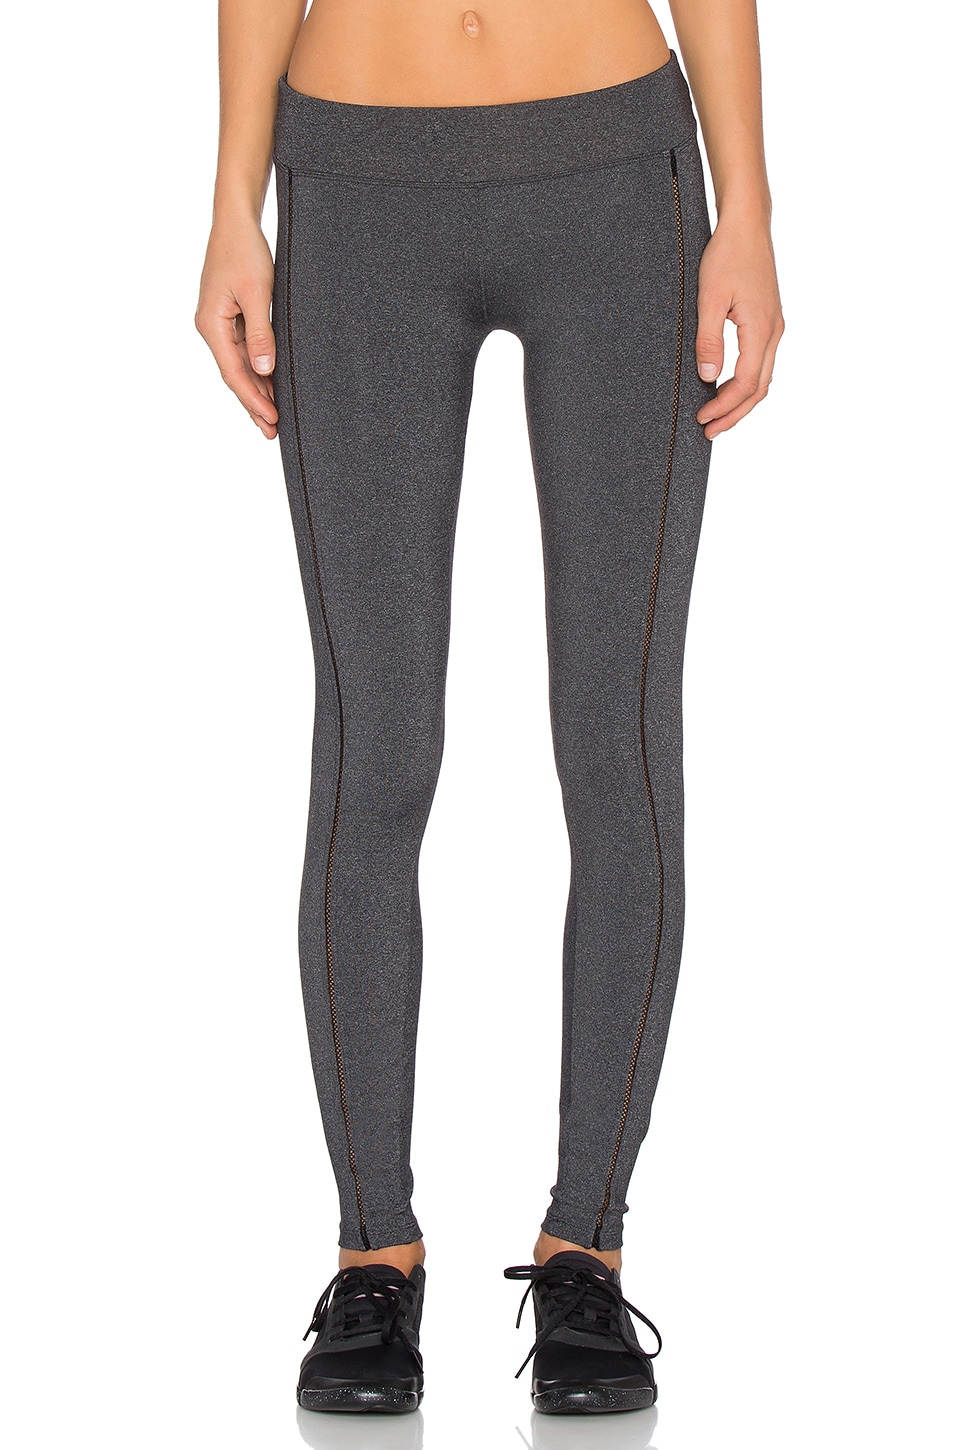 SOLOW Open Embroidered Legging in Charcoal